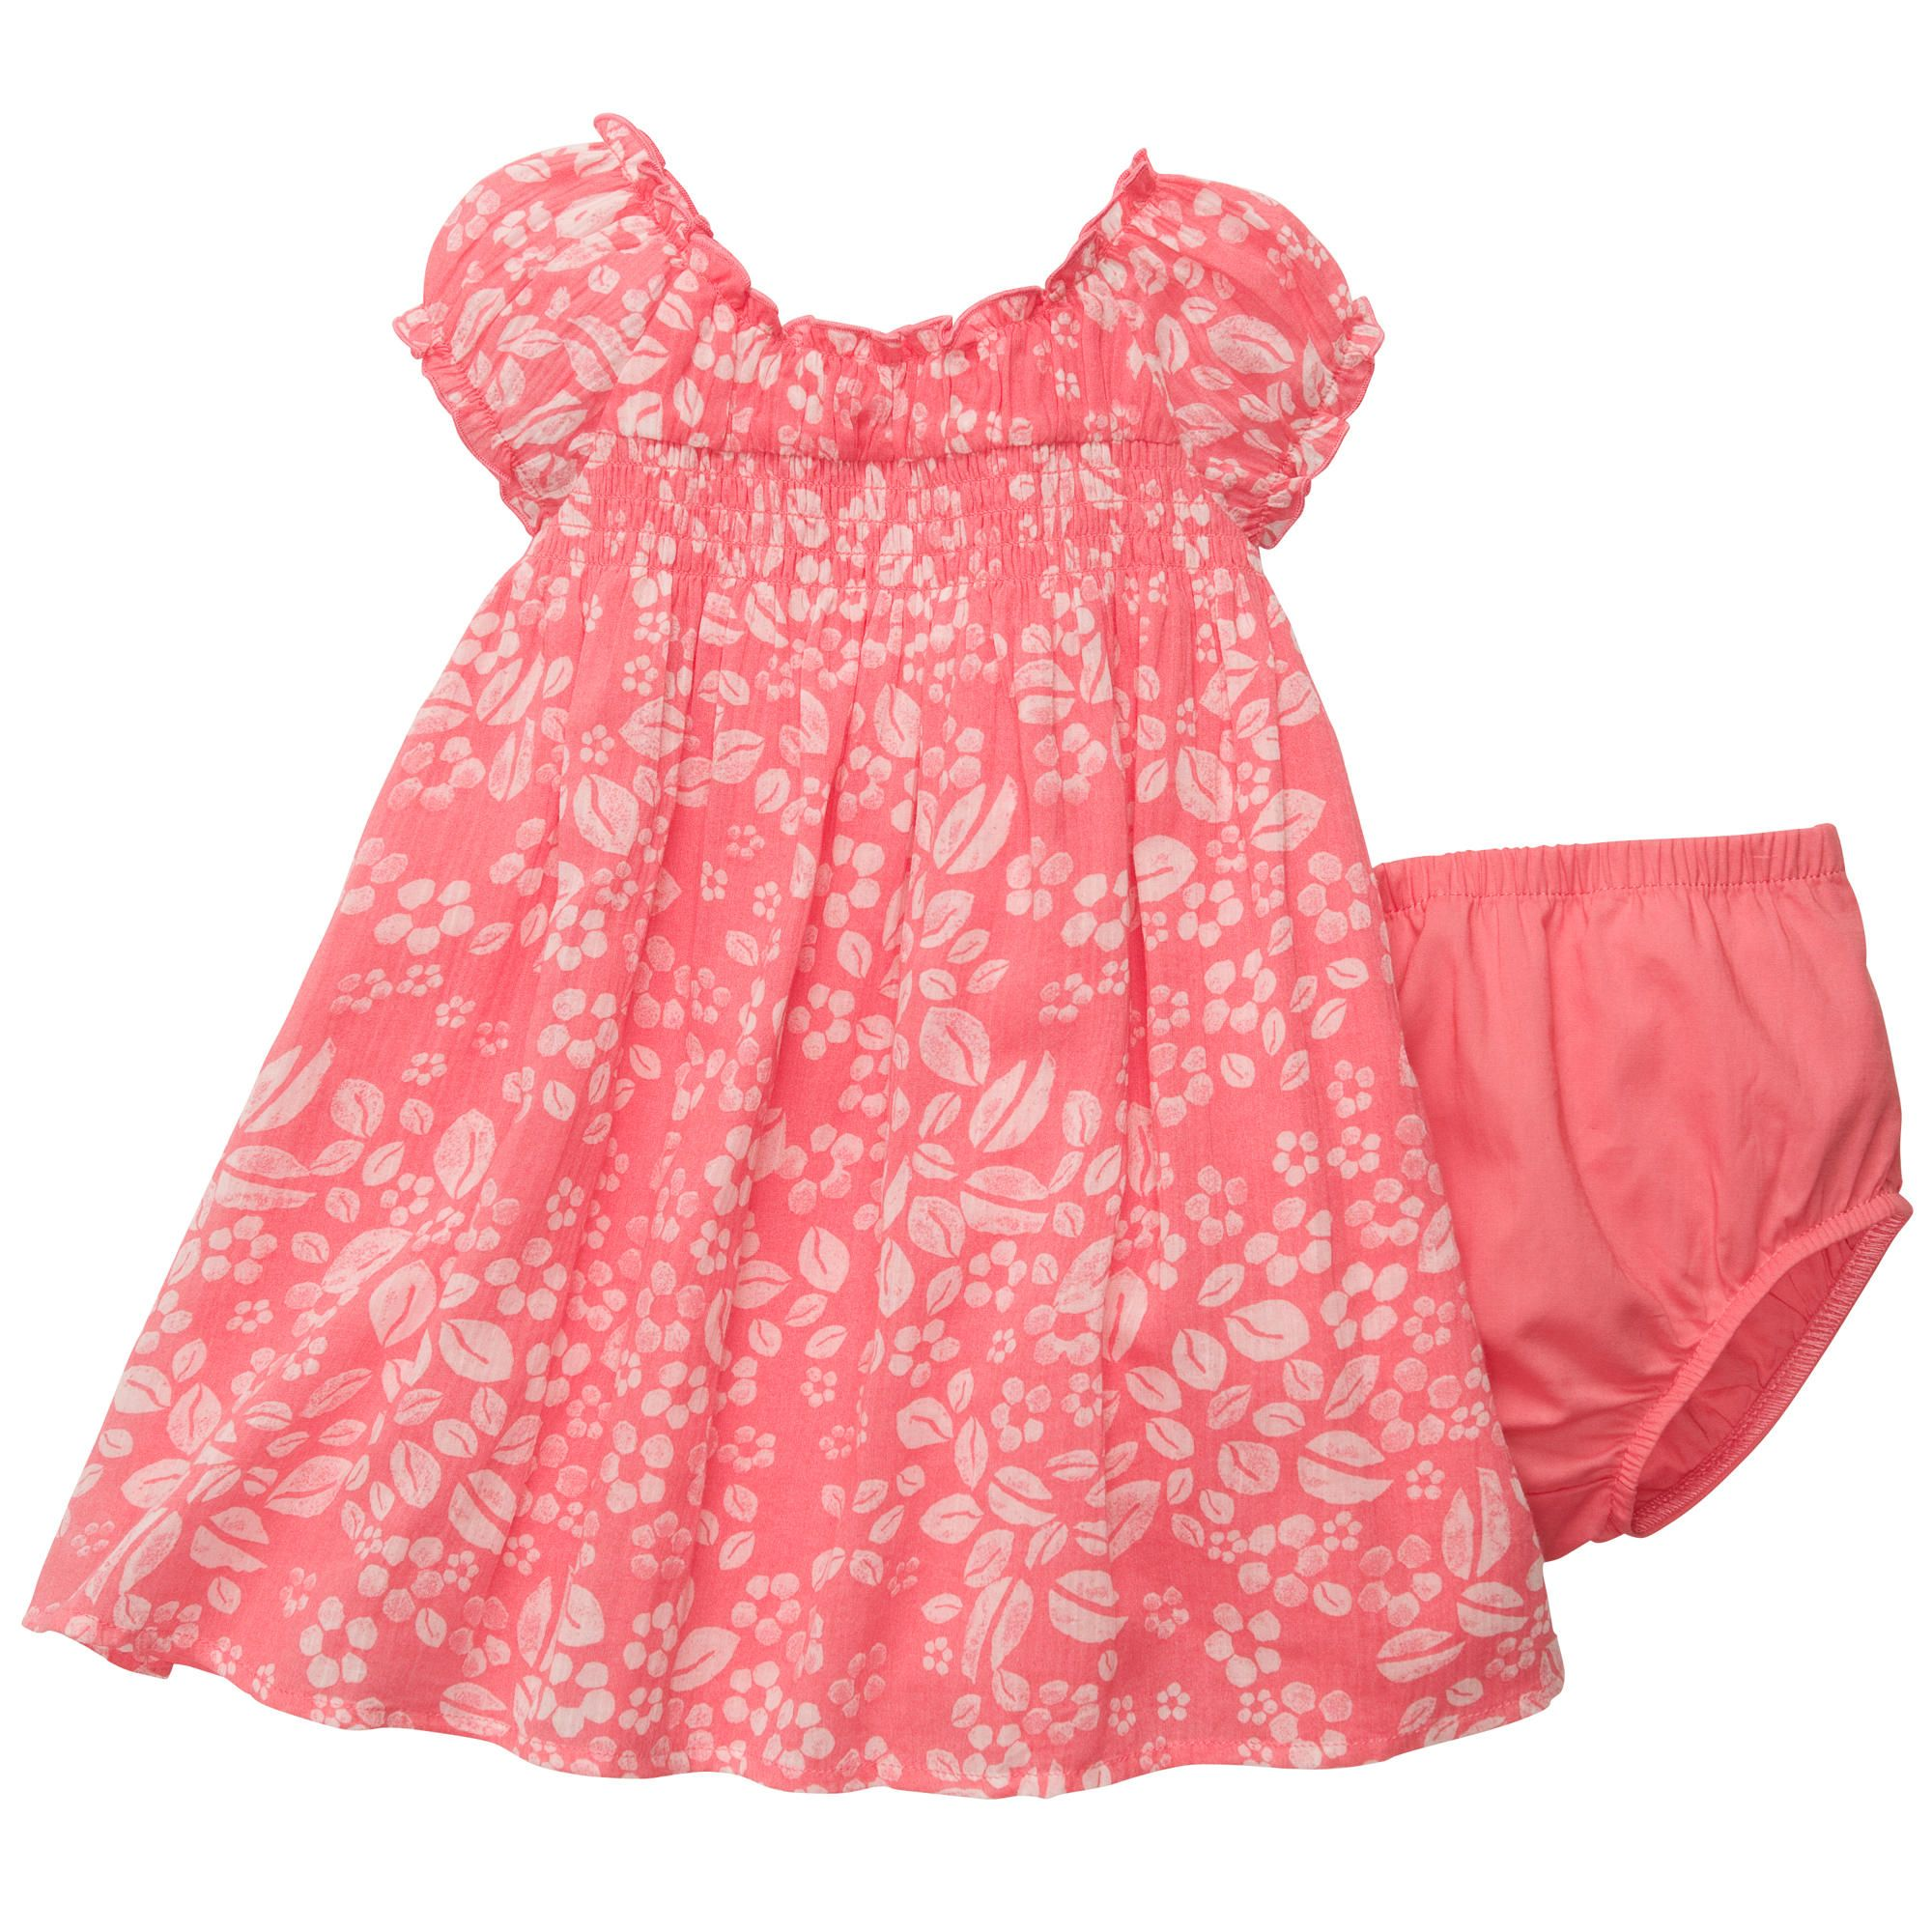 Crinkle Cotton Lawn Dress Baby Girl Outfits